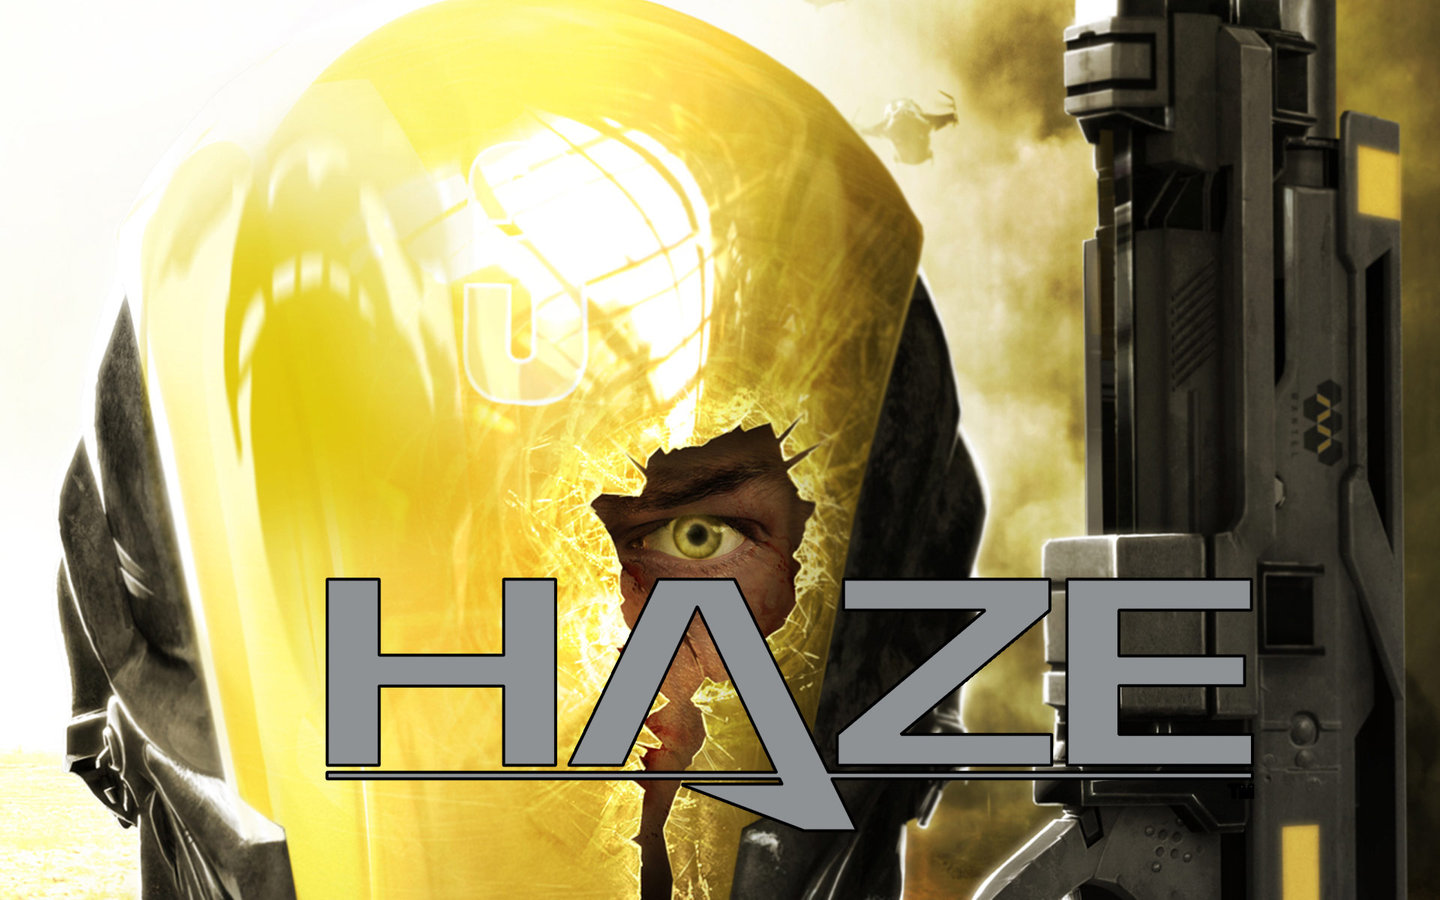 Haze Wallpaper